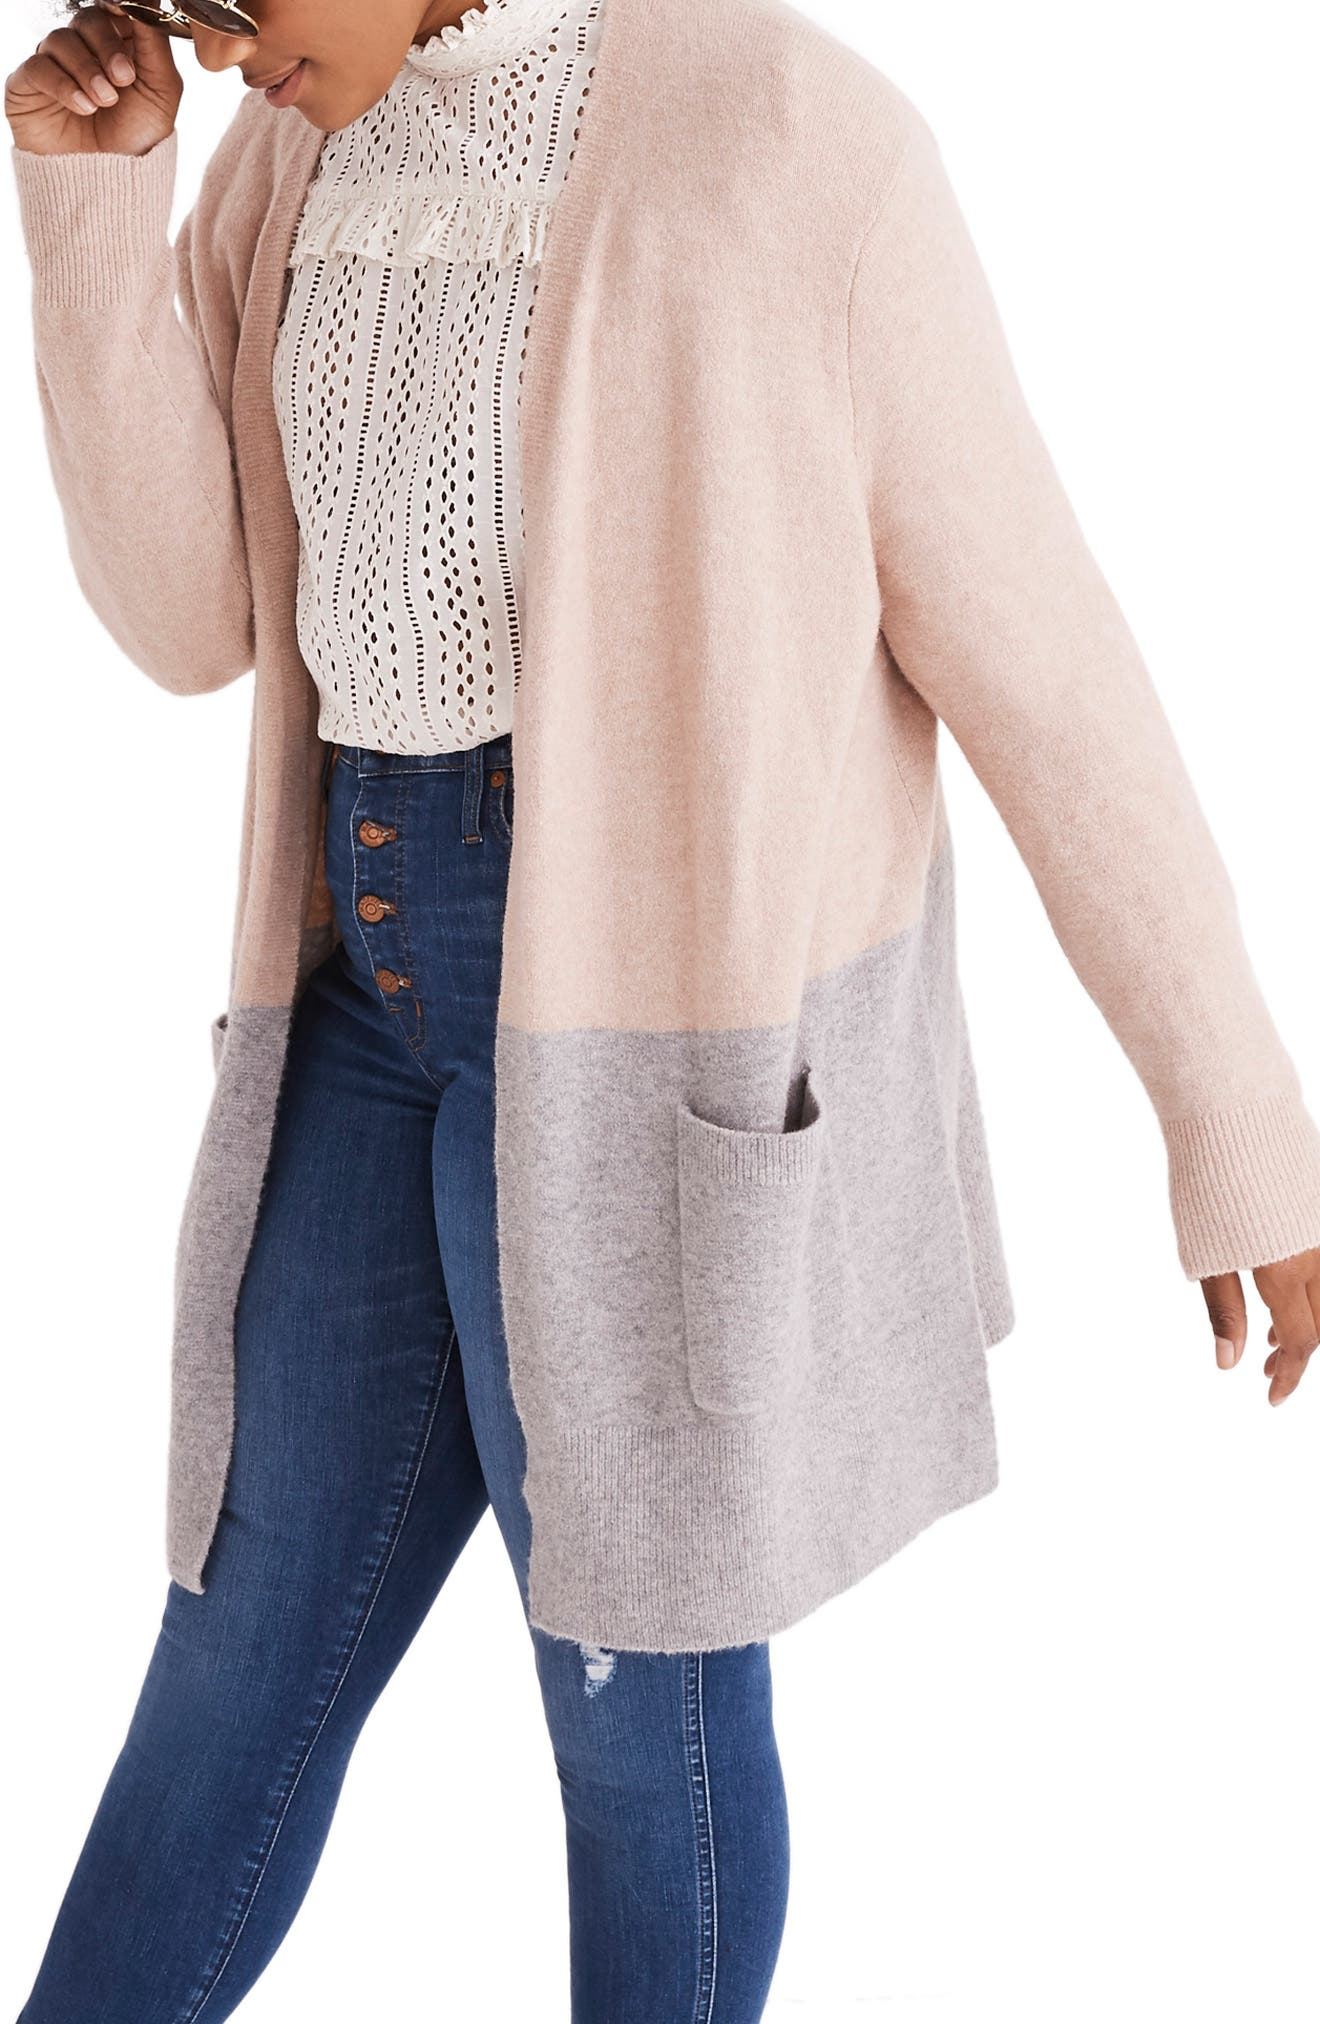 MADEWELL,                             Kent Colorblock Cardigan Sweater,                             Alternate thumbnail 2, color,                             250